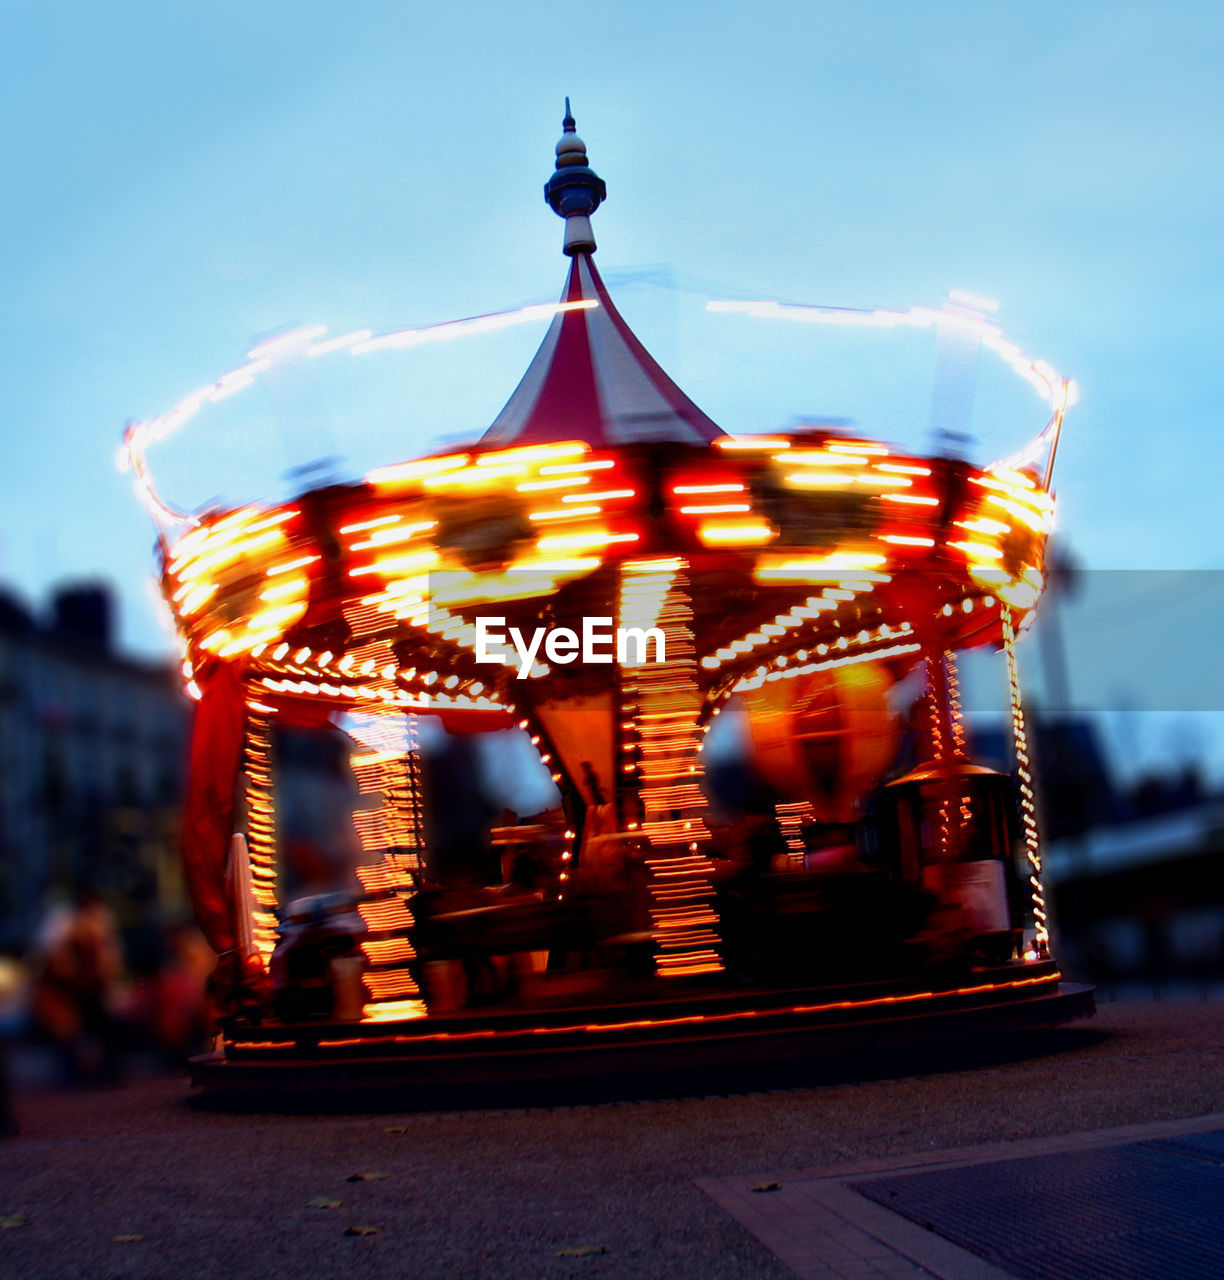 sky, carousel, illuminated, arts culture and entertainment, motion, amusement park ride, amusement park, blurred motion, architecture, no people, nature, focus on foreground, built structure, outdoors, dusk, building exterior, merry-go-round, day, long exposure, cloud - sky